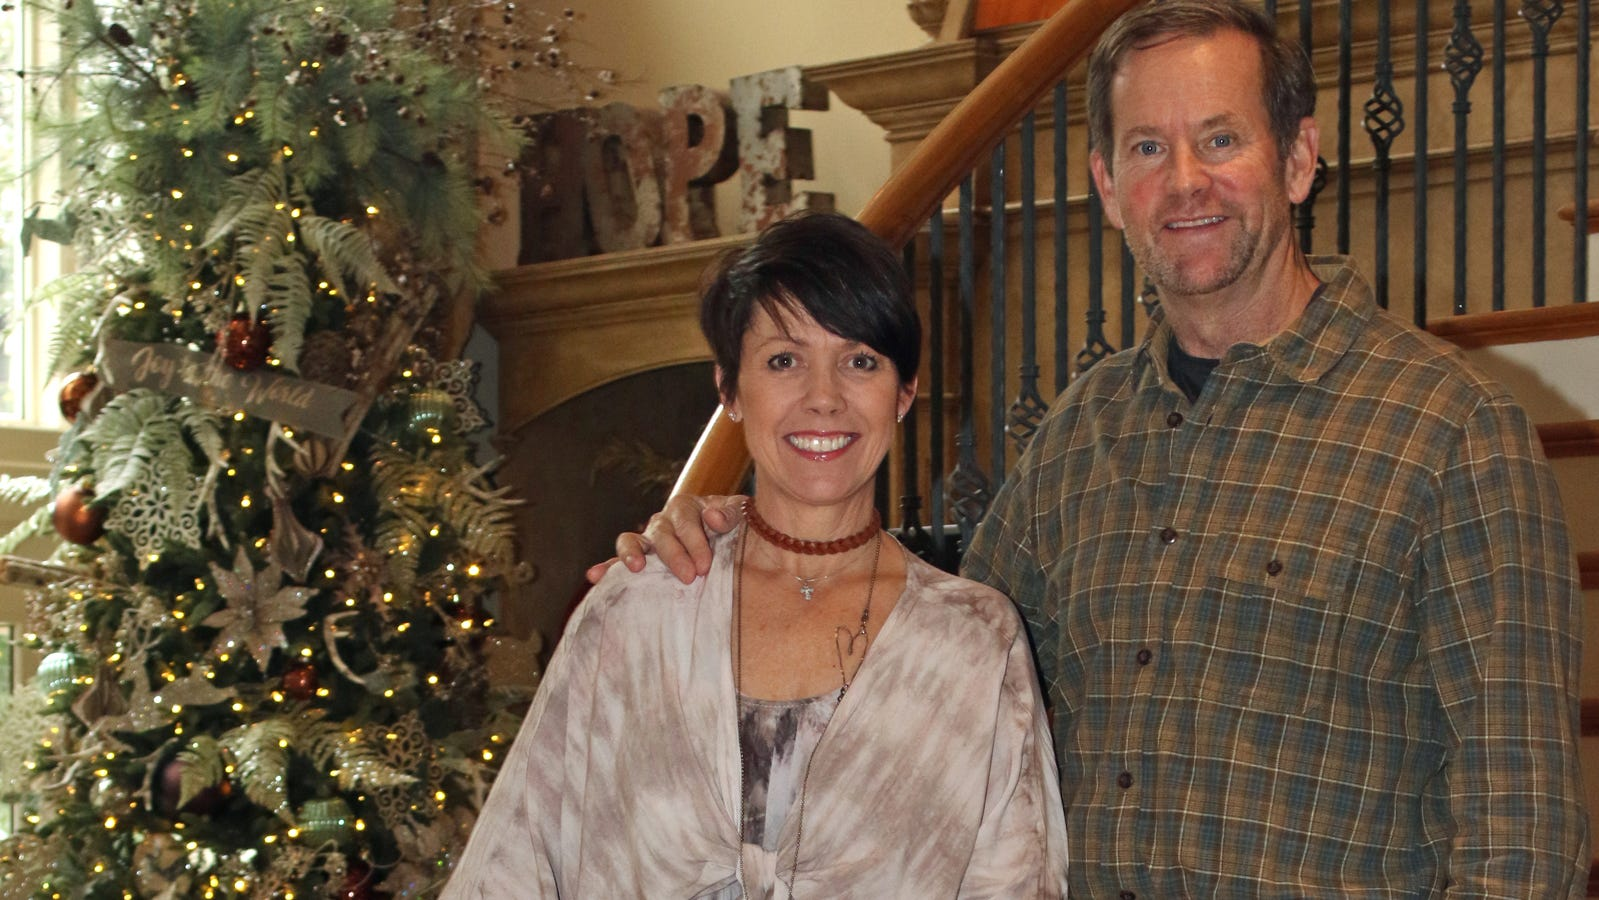 In sickness and in health     Crisis strengthens couple's love, faith in God